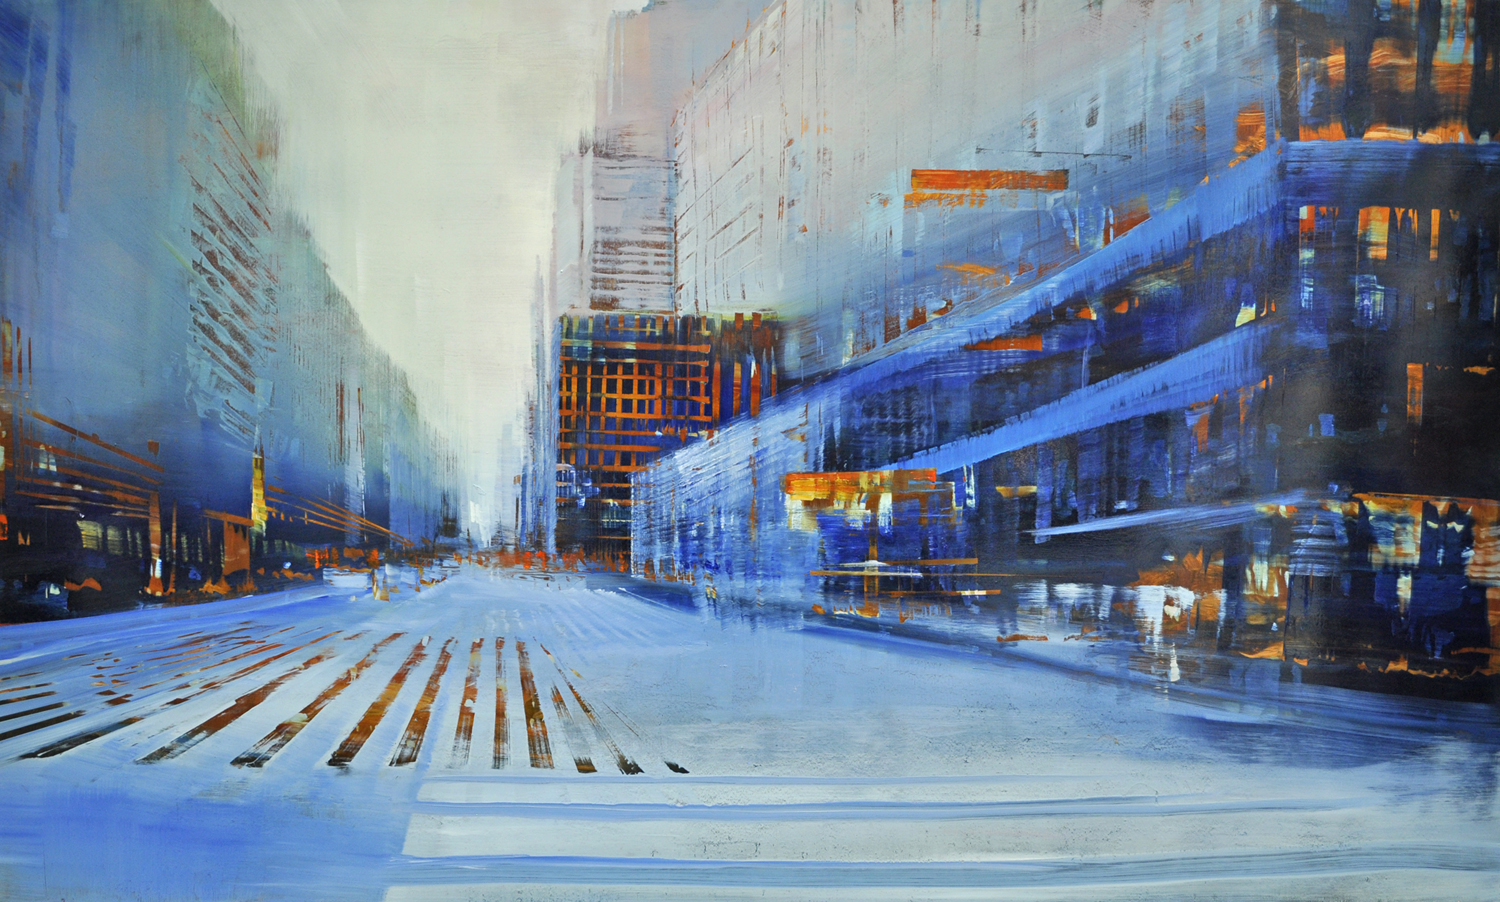 """City, Midtown Crossing"", oil on copper, 36x60"